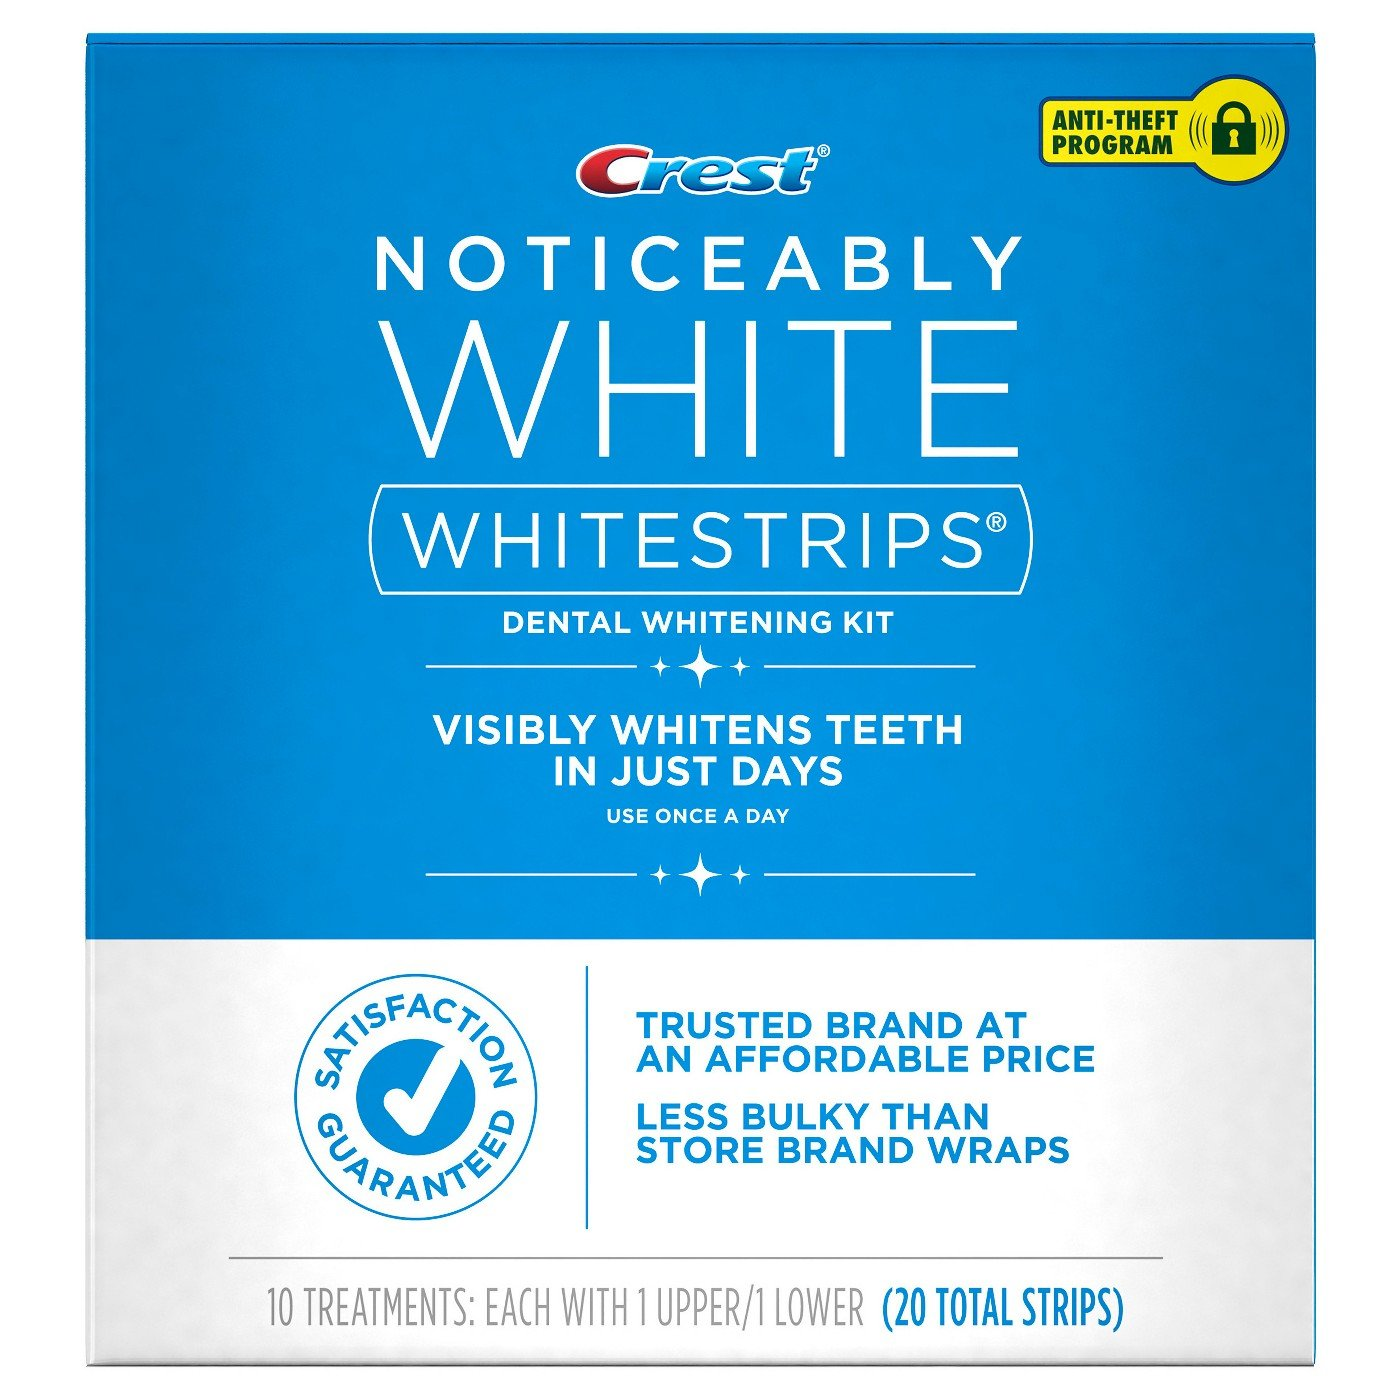 Crest Noticeably White Whitestrips, 10 Treatments, (20 Total Strips) by Crest